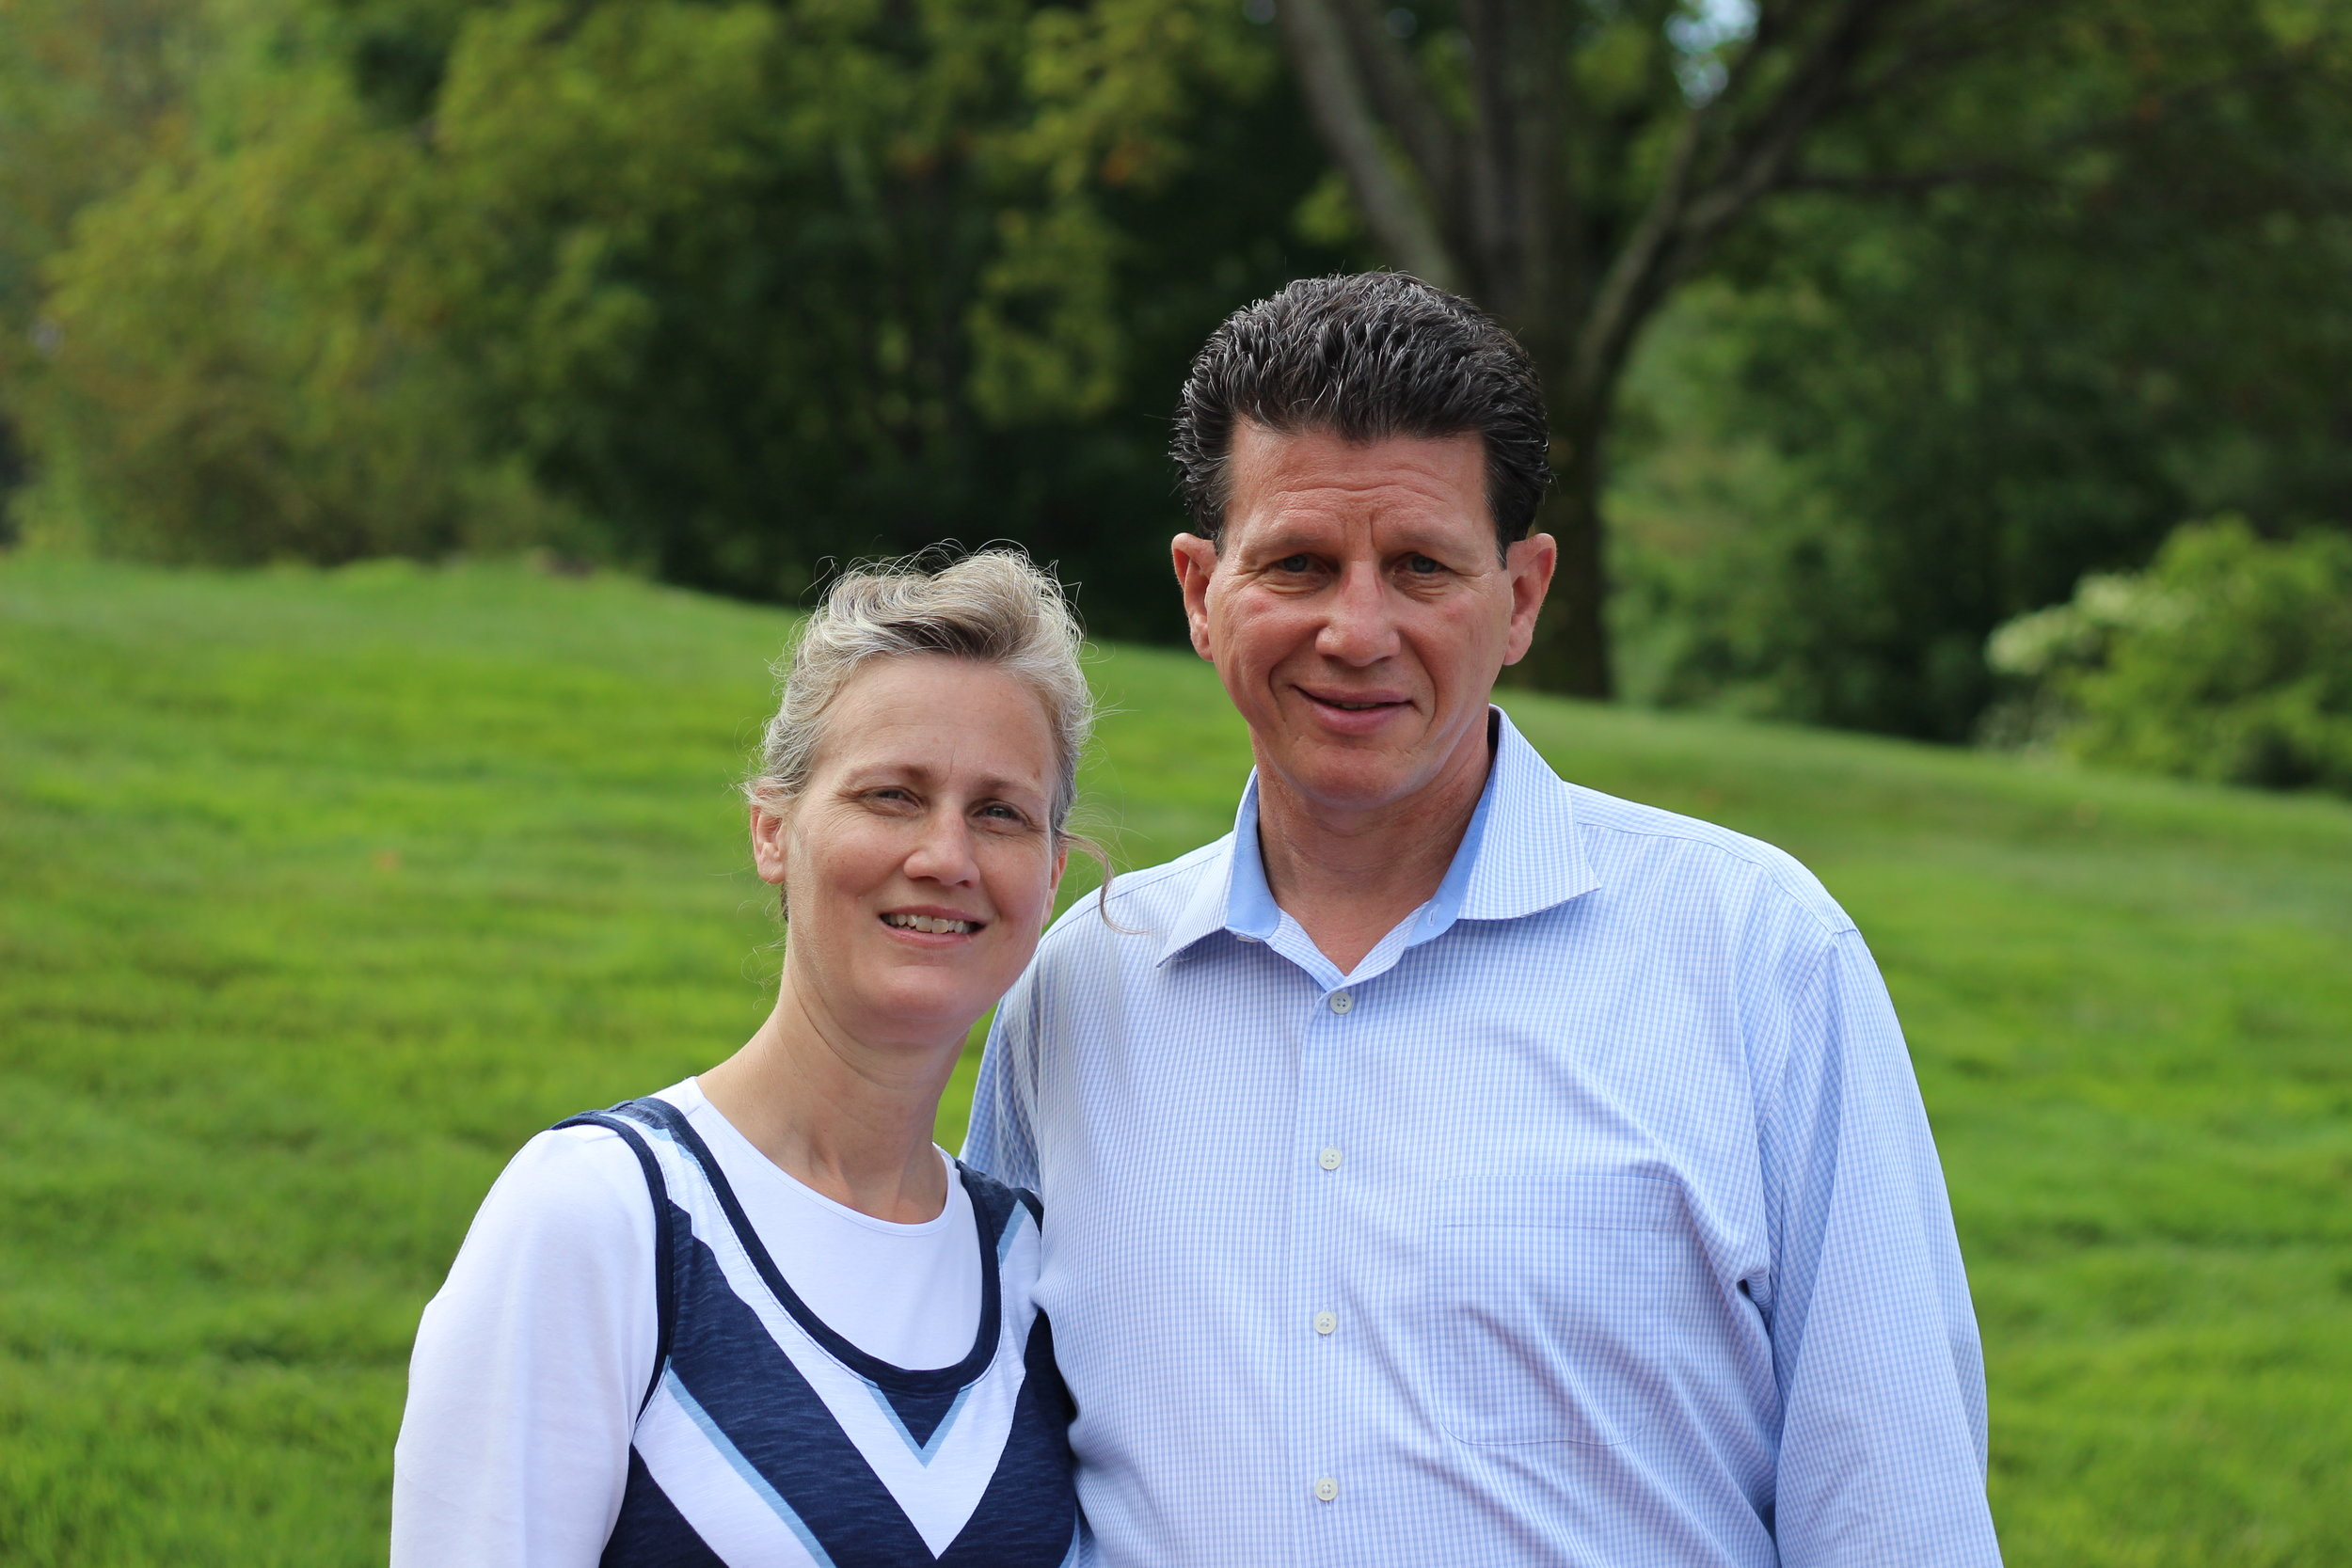 DISTRICT SUPERINTENDENT - John & Carolyn Hanson